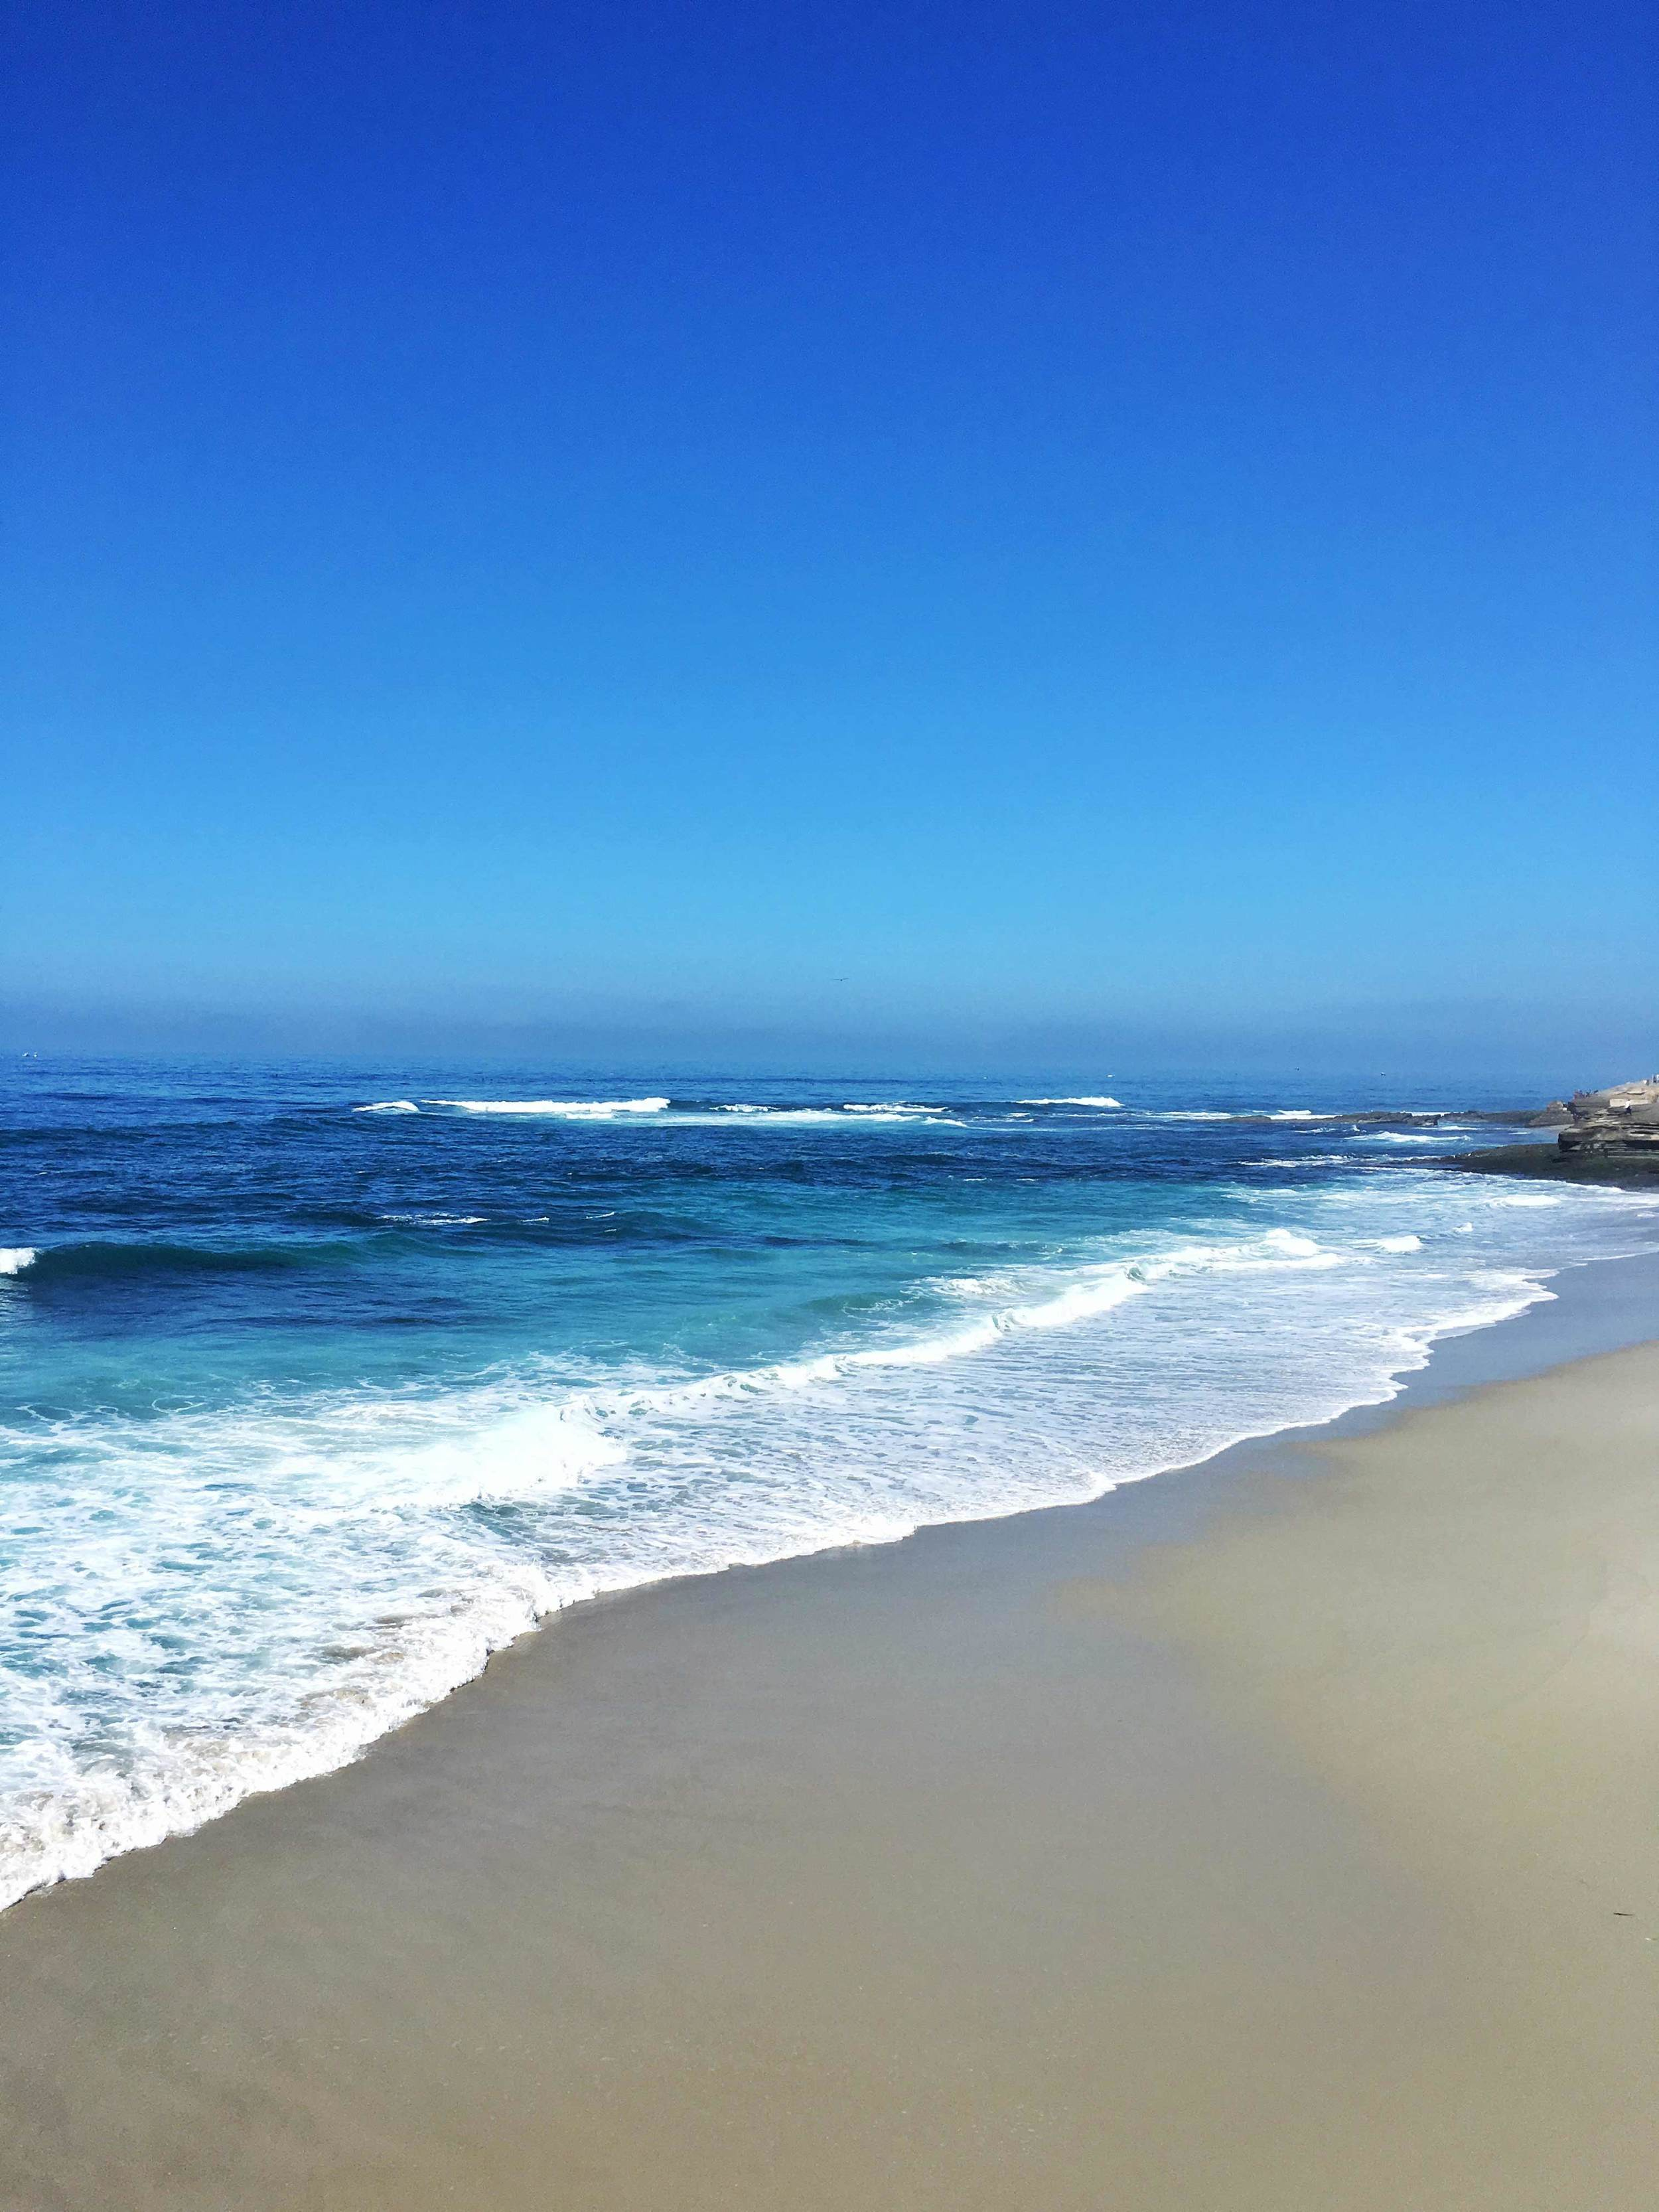 The turquoise-blue waters of La Jolla